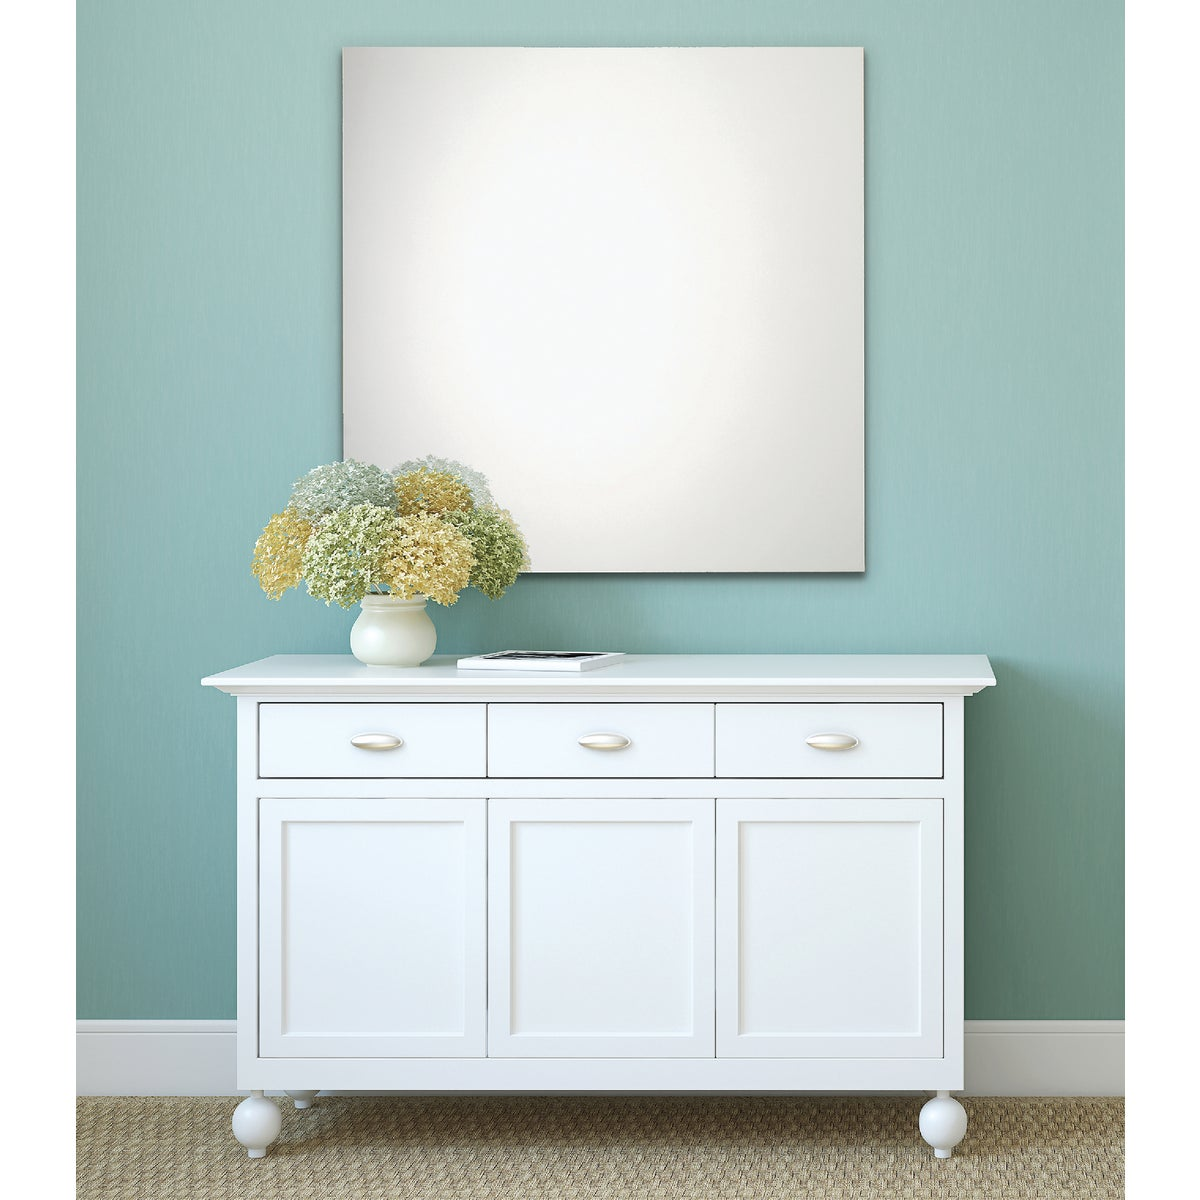 36X48 FMLS POL ED MIRROR - 20-1364 by Home Decor Innovatns